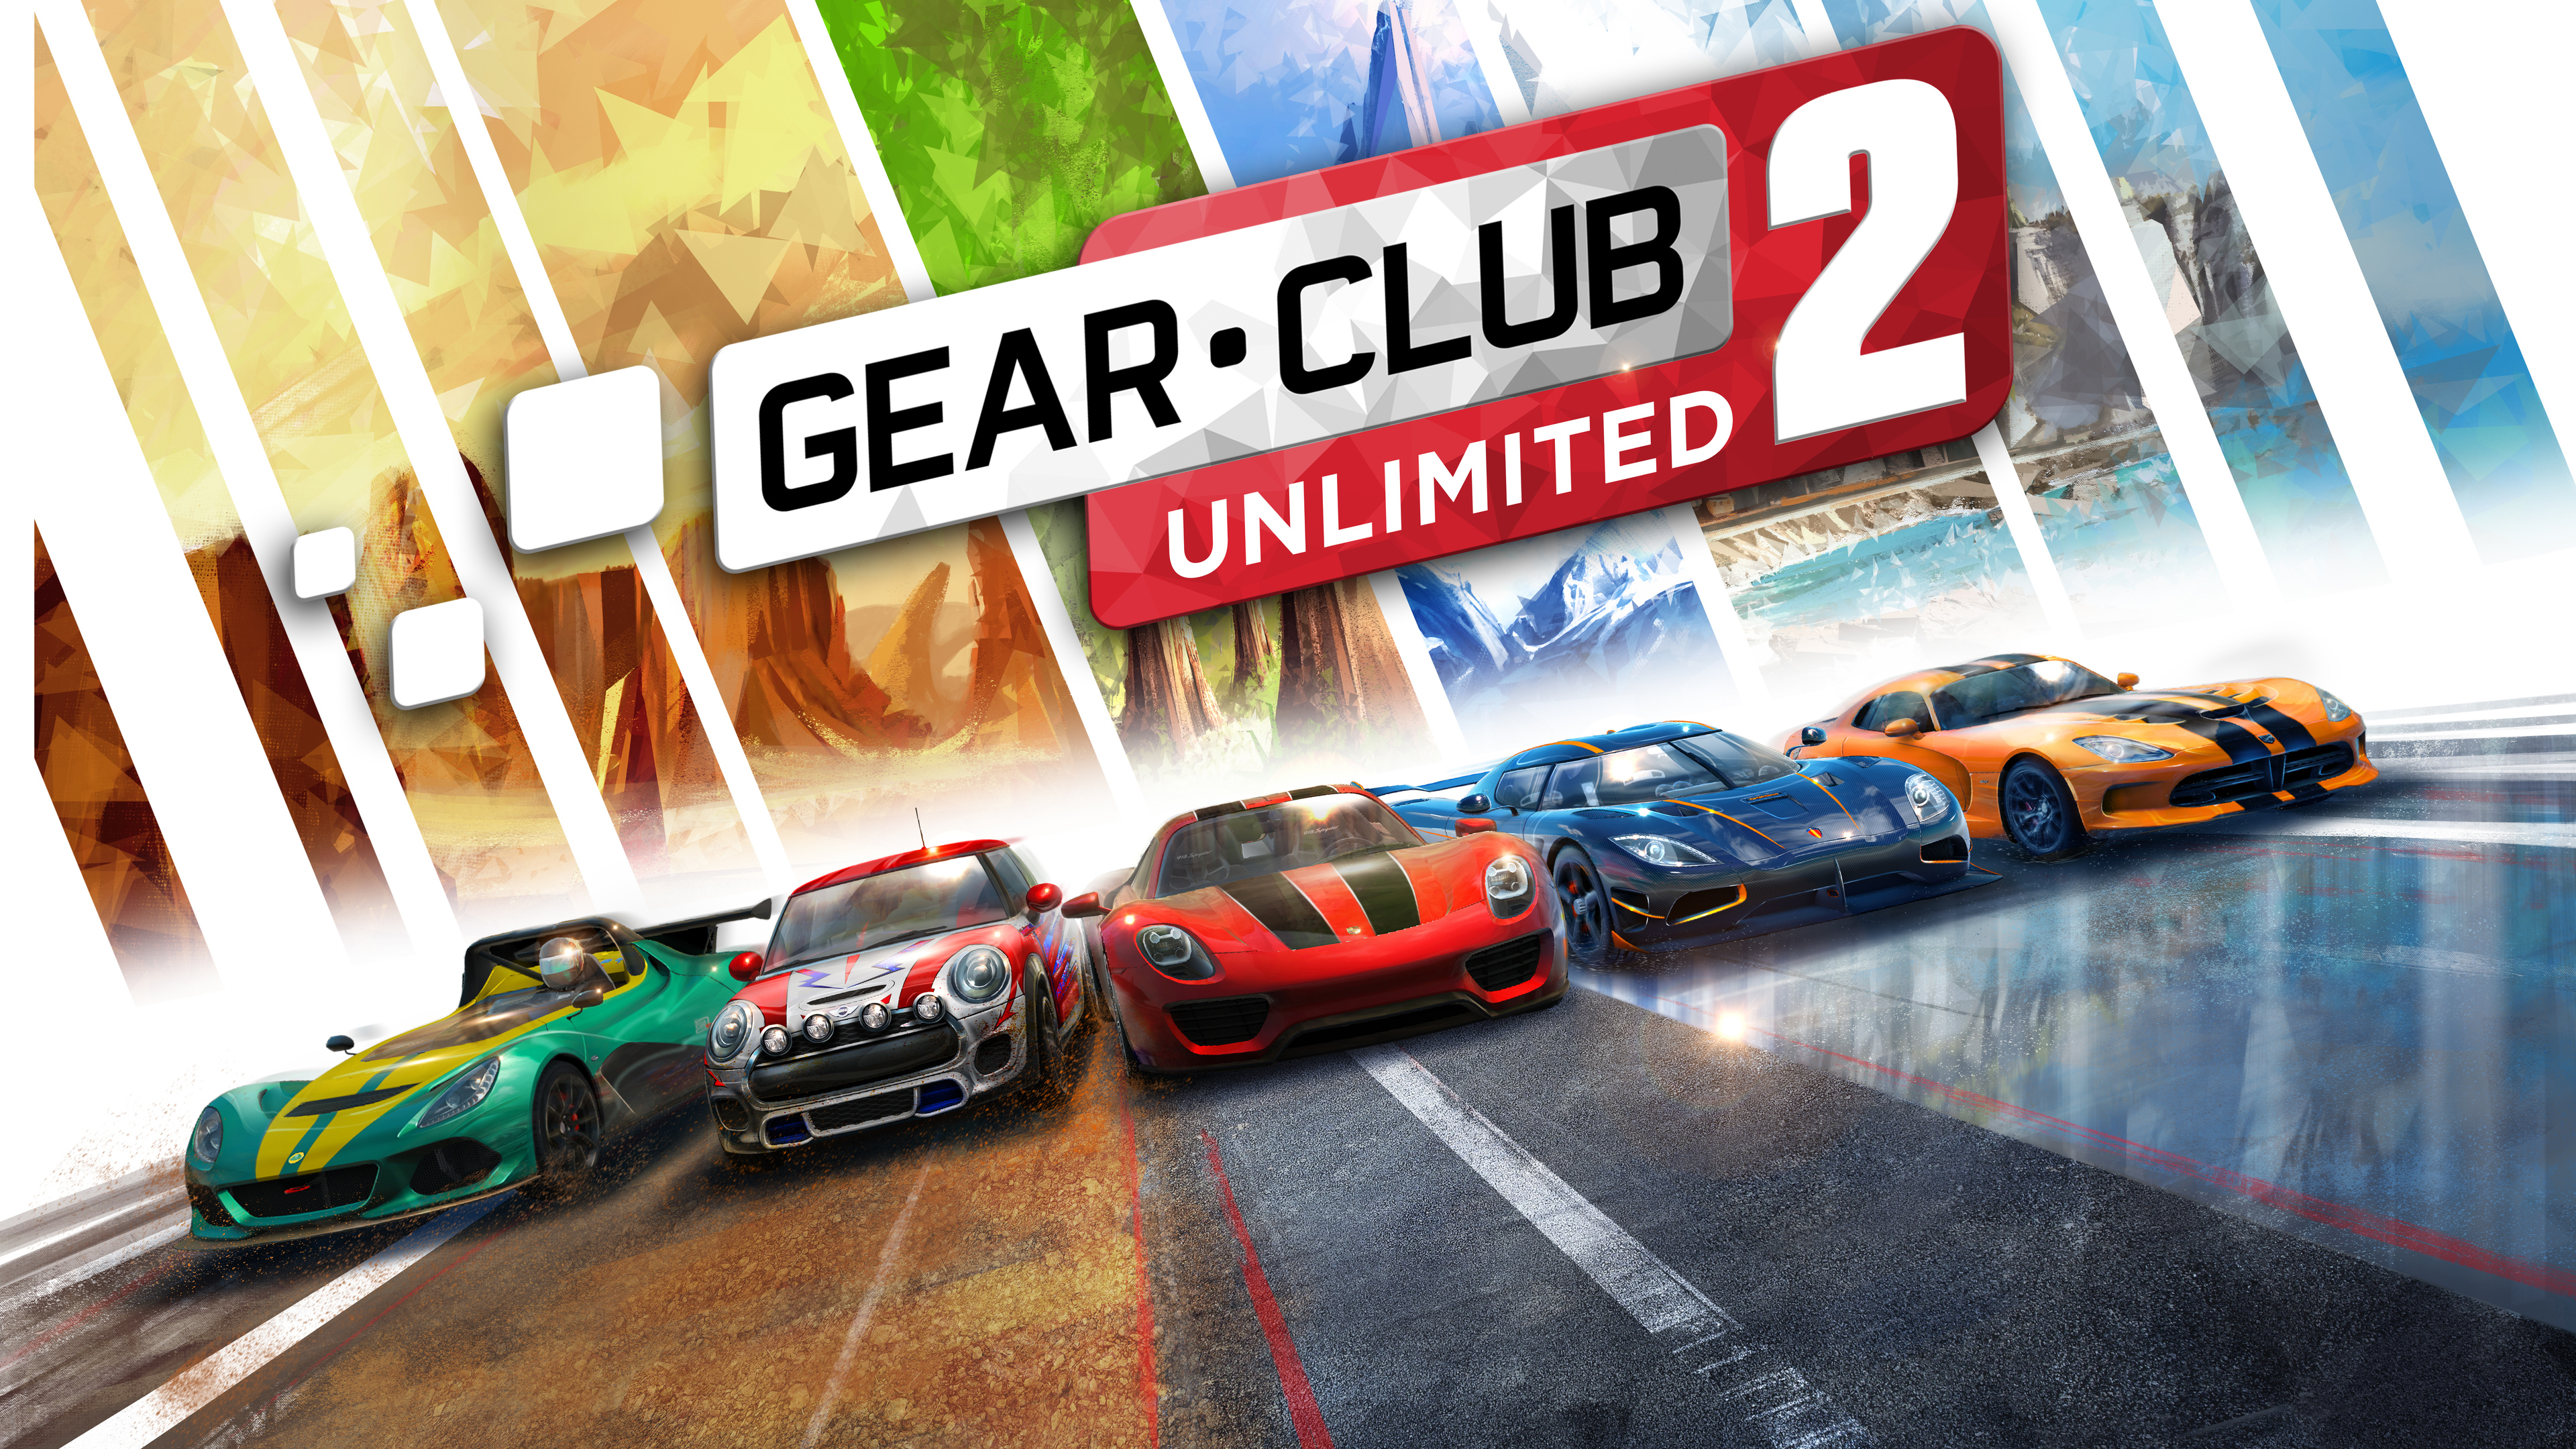 gear club unlimited 2 1558221399 - Gear Club Unlimited 2 - hd-wallpapers, games wallpapers, 4k-wallpapers